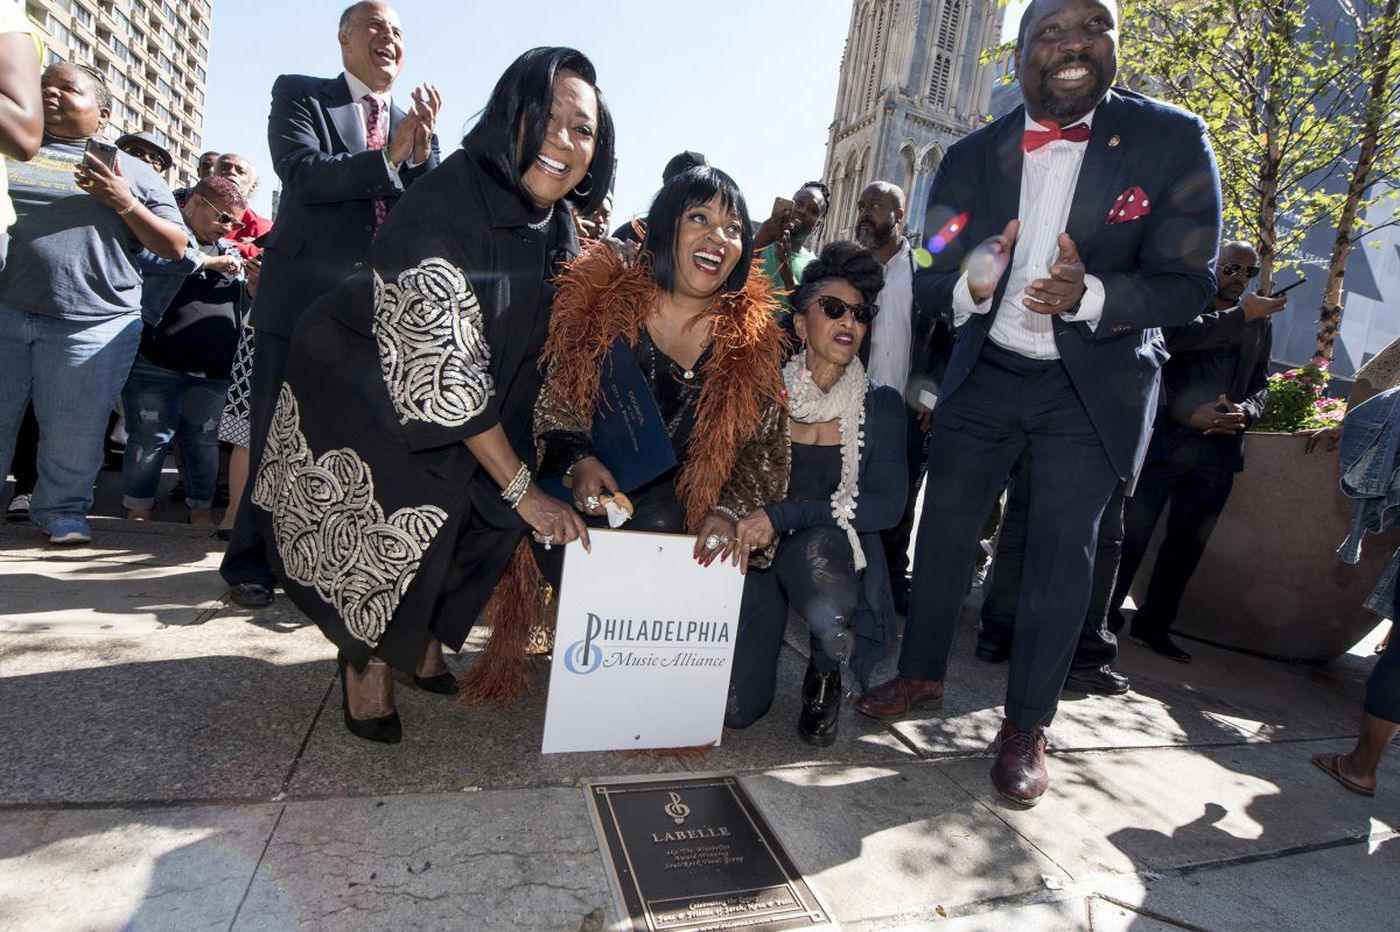 Patti LaBelle, Jill Scott, and others honored at Philly Music Walk of Fame